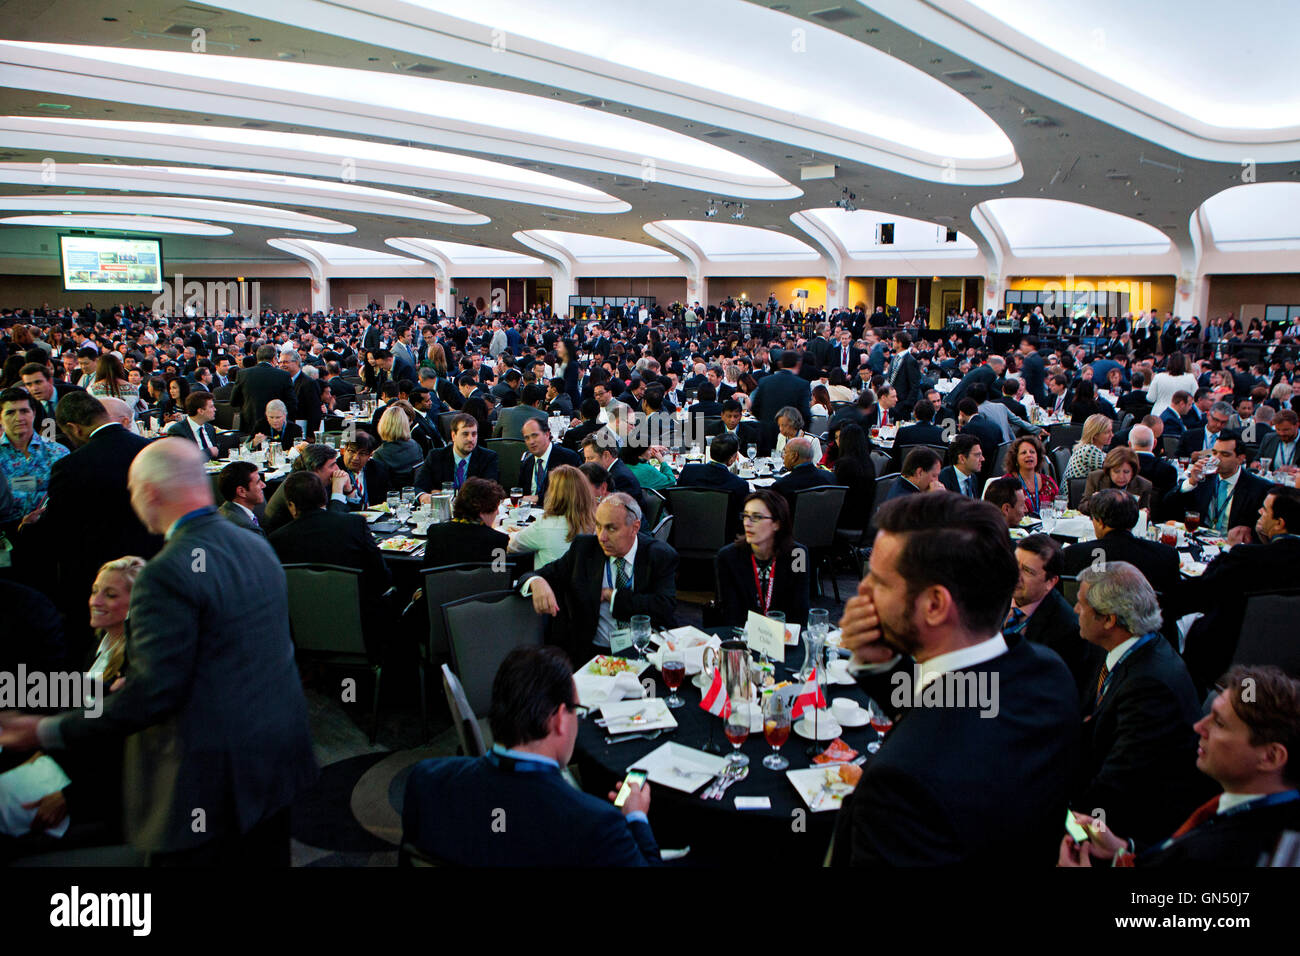 Guests seated at tables during an event in a large banquet room in the Hilton Hotel - Washington, DC  USA - Stock Image